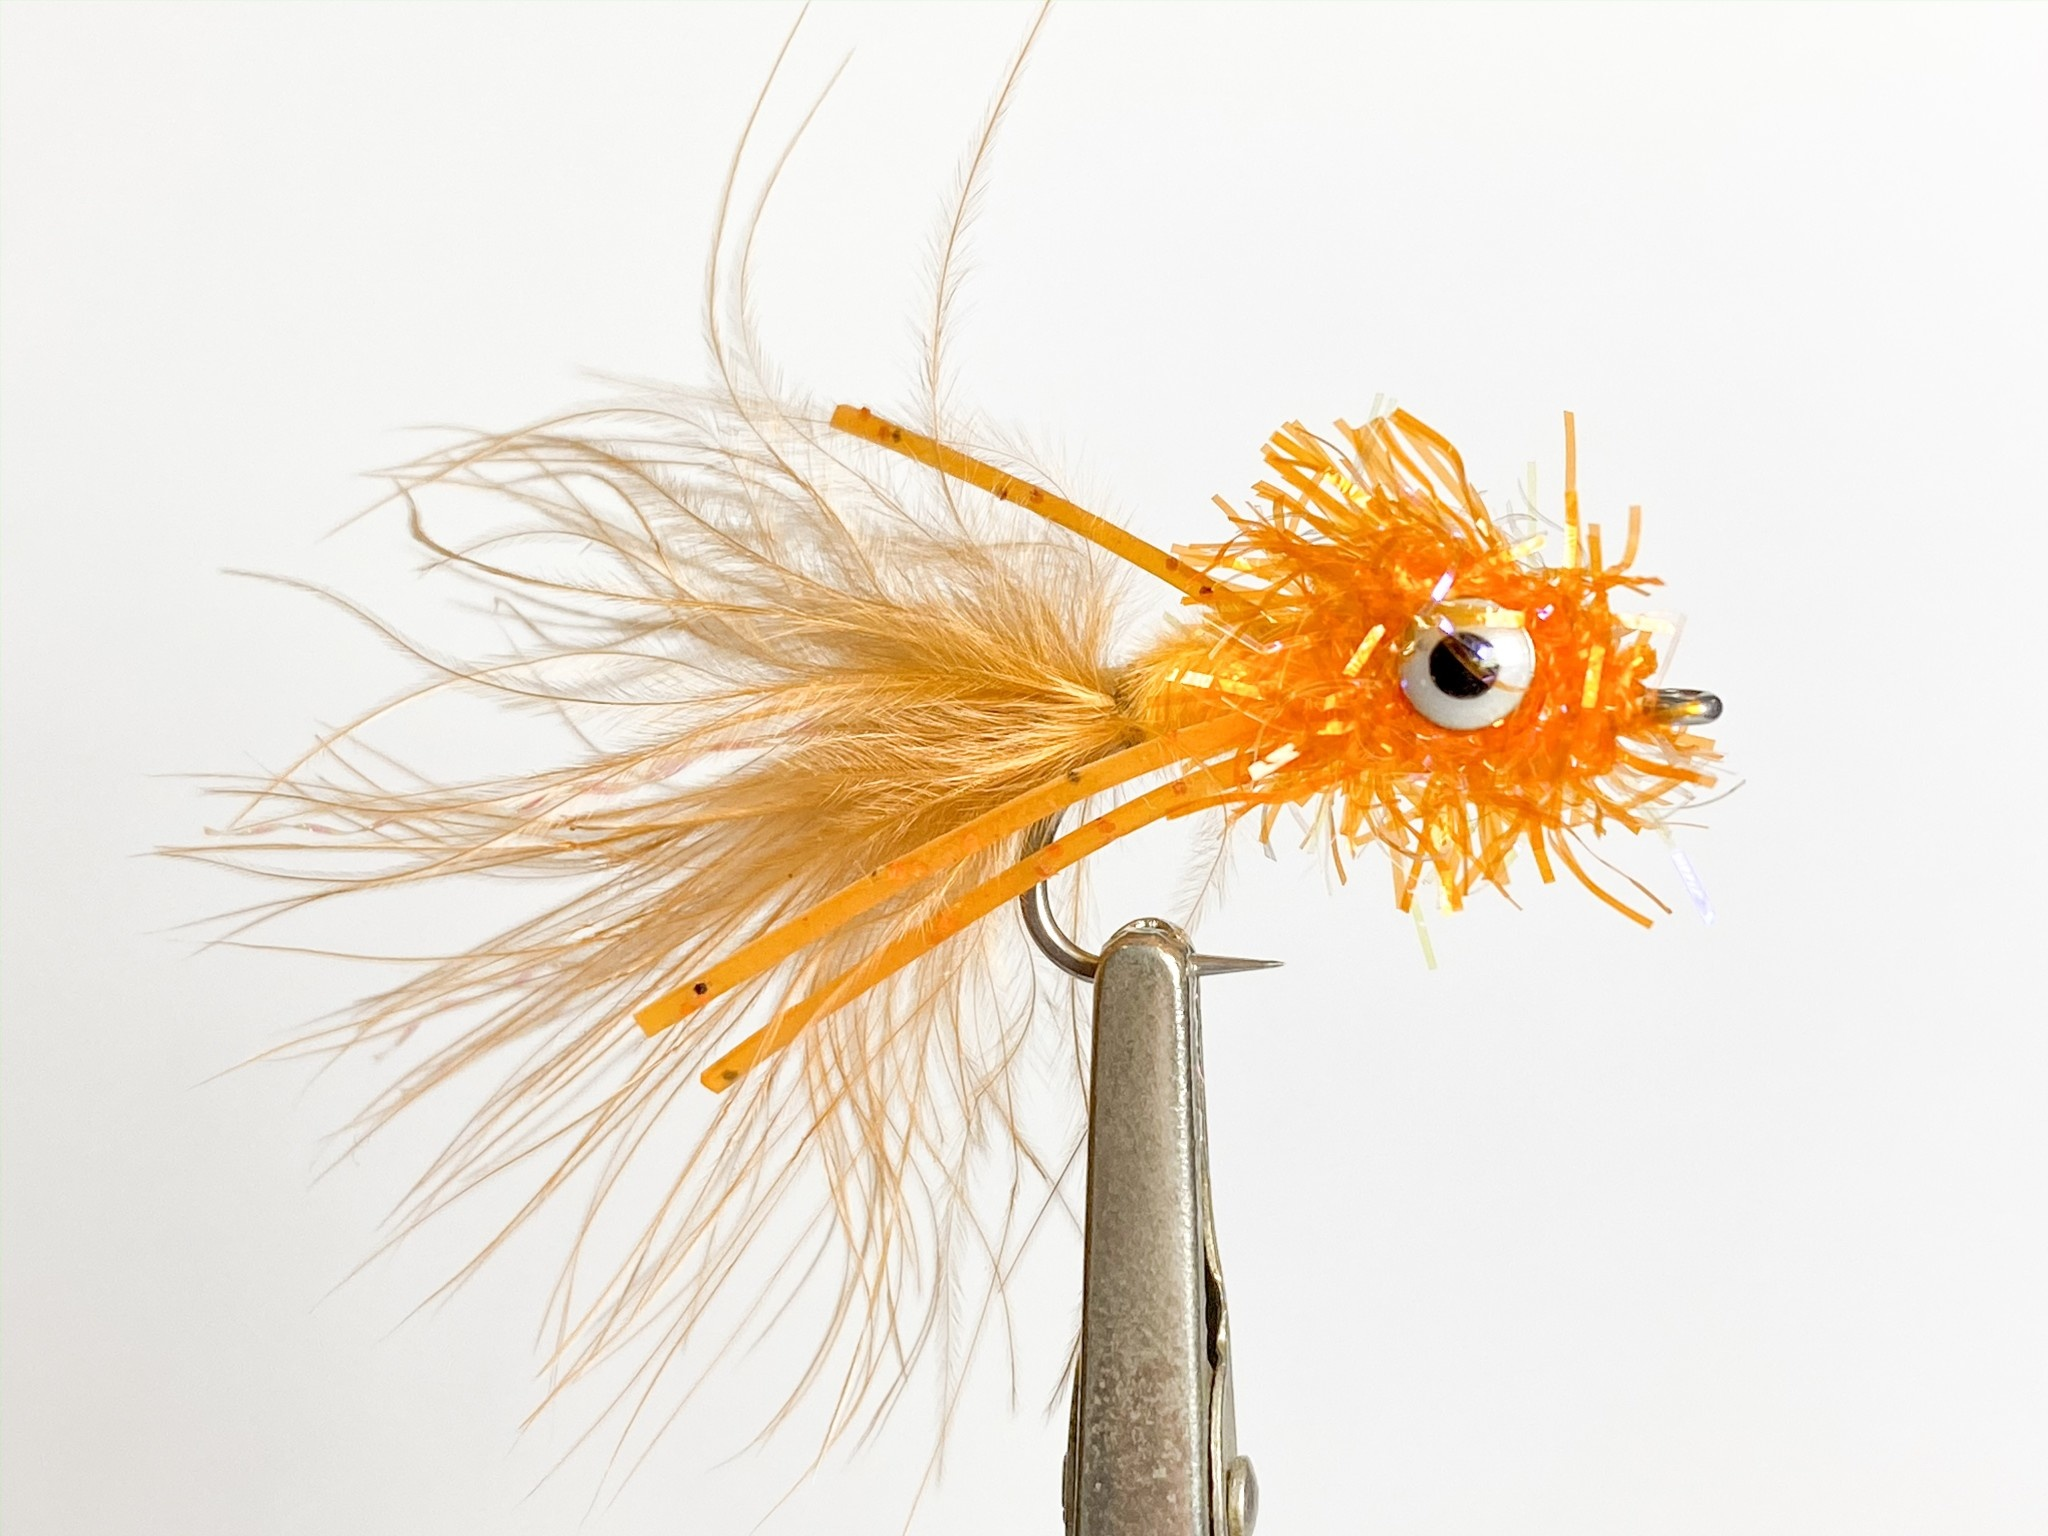 Gig Harbor Fly Shop Sea Run Bugger size 6